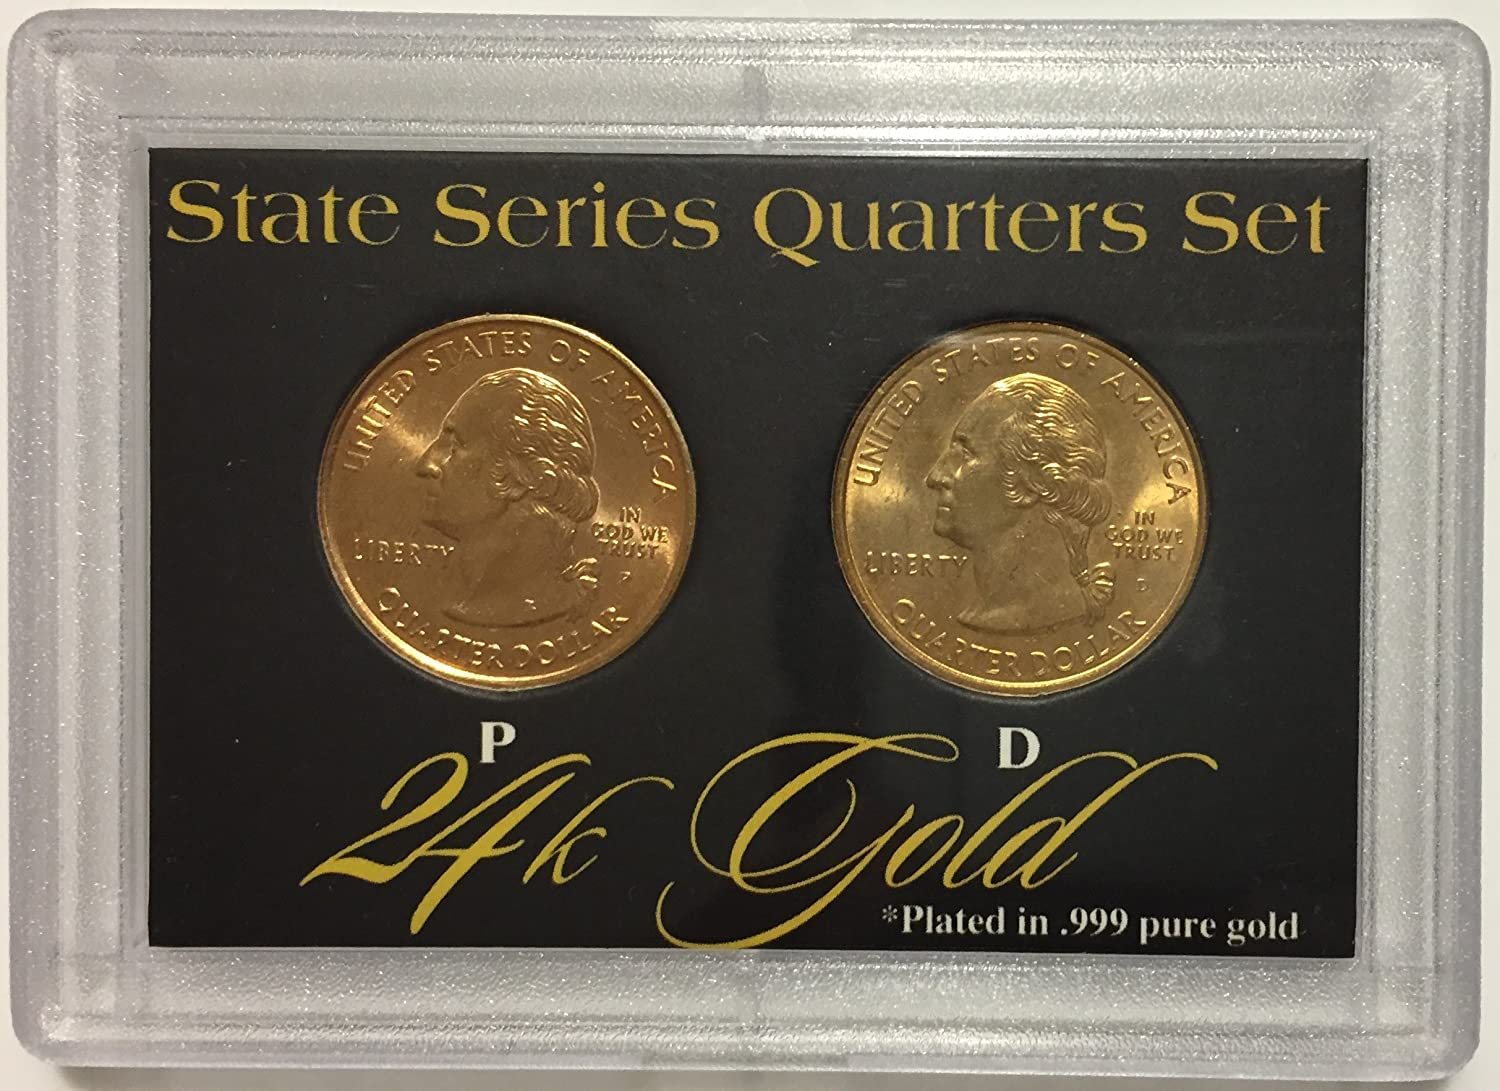 Amazon.com 24K .999% PURE GOLD PLATED STATE SERIES QUARTERS SET Toys u0026 Games & Amazon.com: 24K .999% PURE GOLD PLATED STATE SERIES QUARTERS SET ...